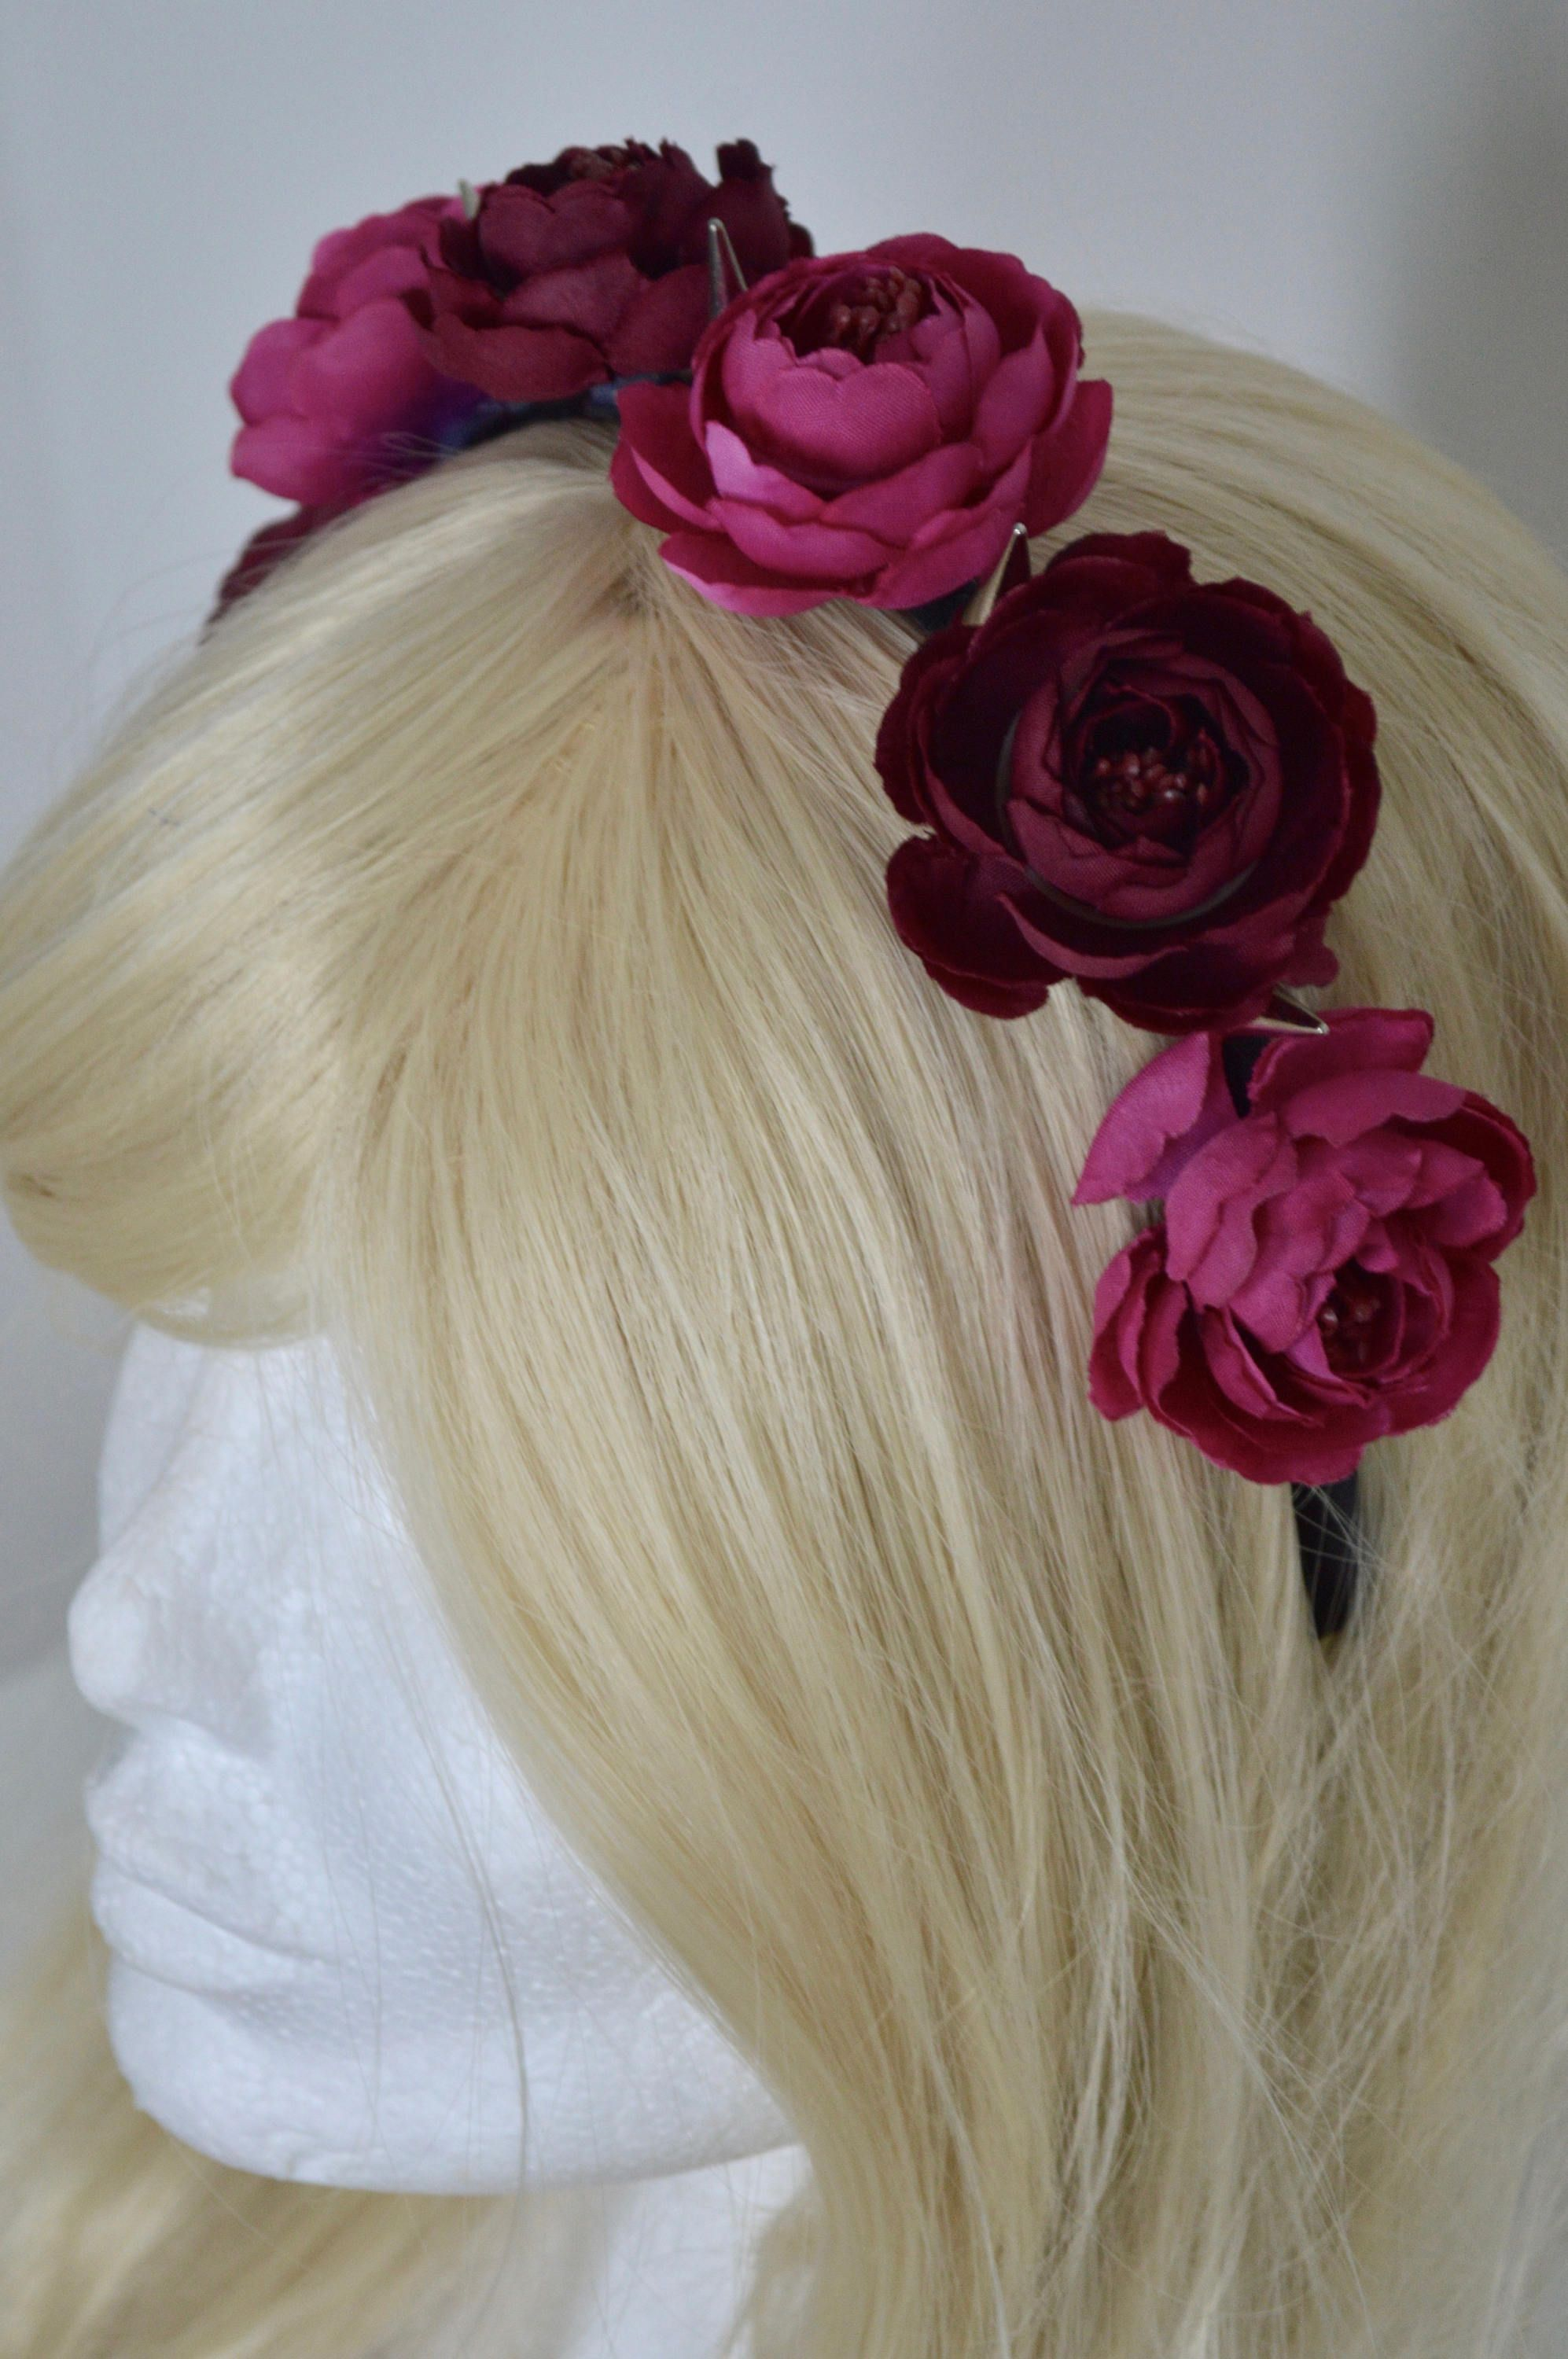 New Pink And Bordeaux Camellia Rose Flower Crown With Silver Metal